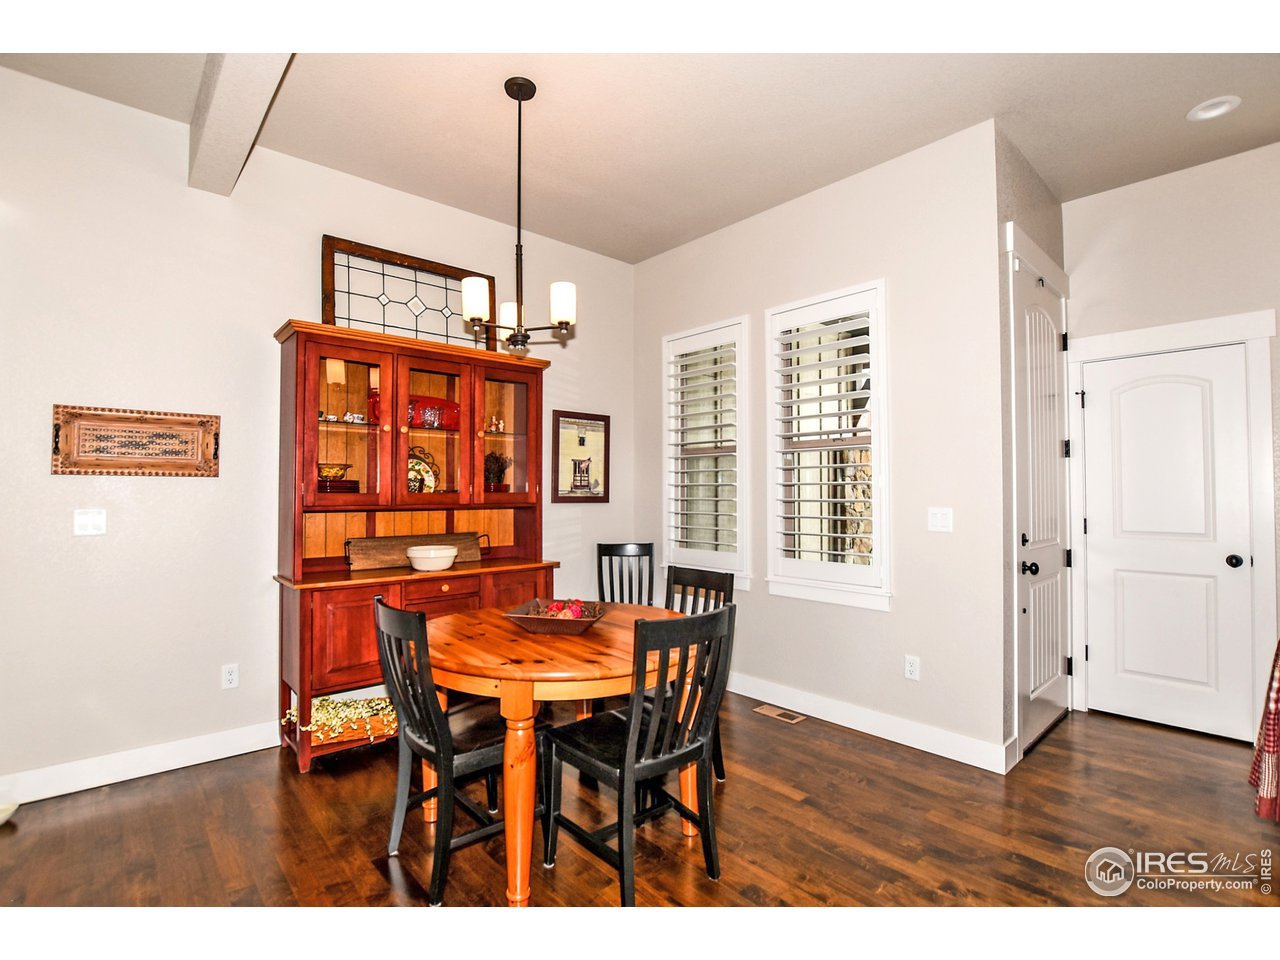 Spacious dining room right off of kitchen and great room